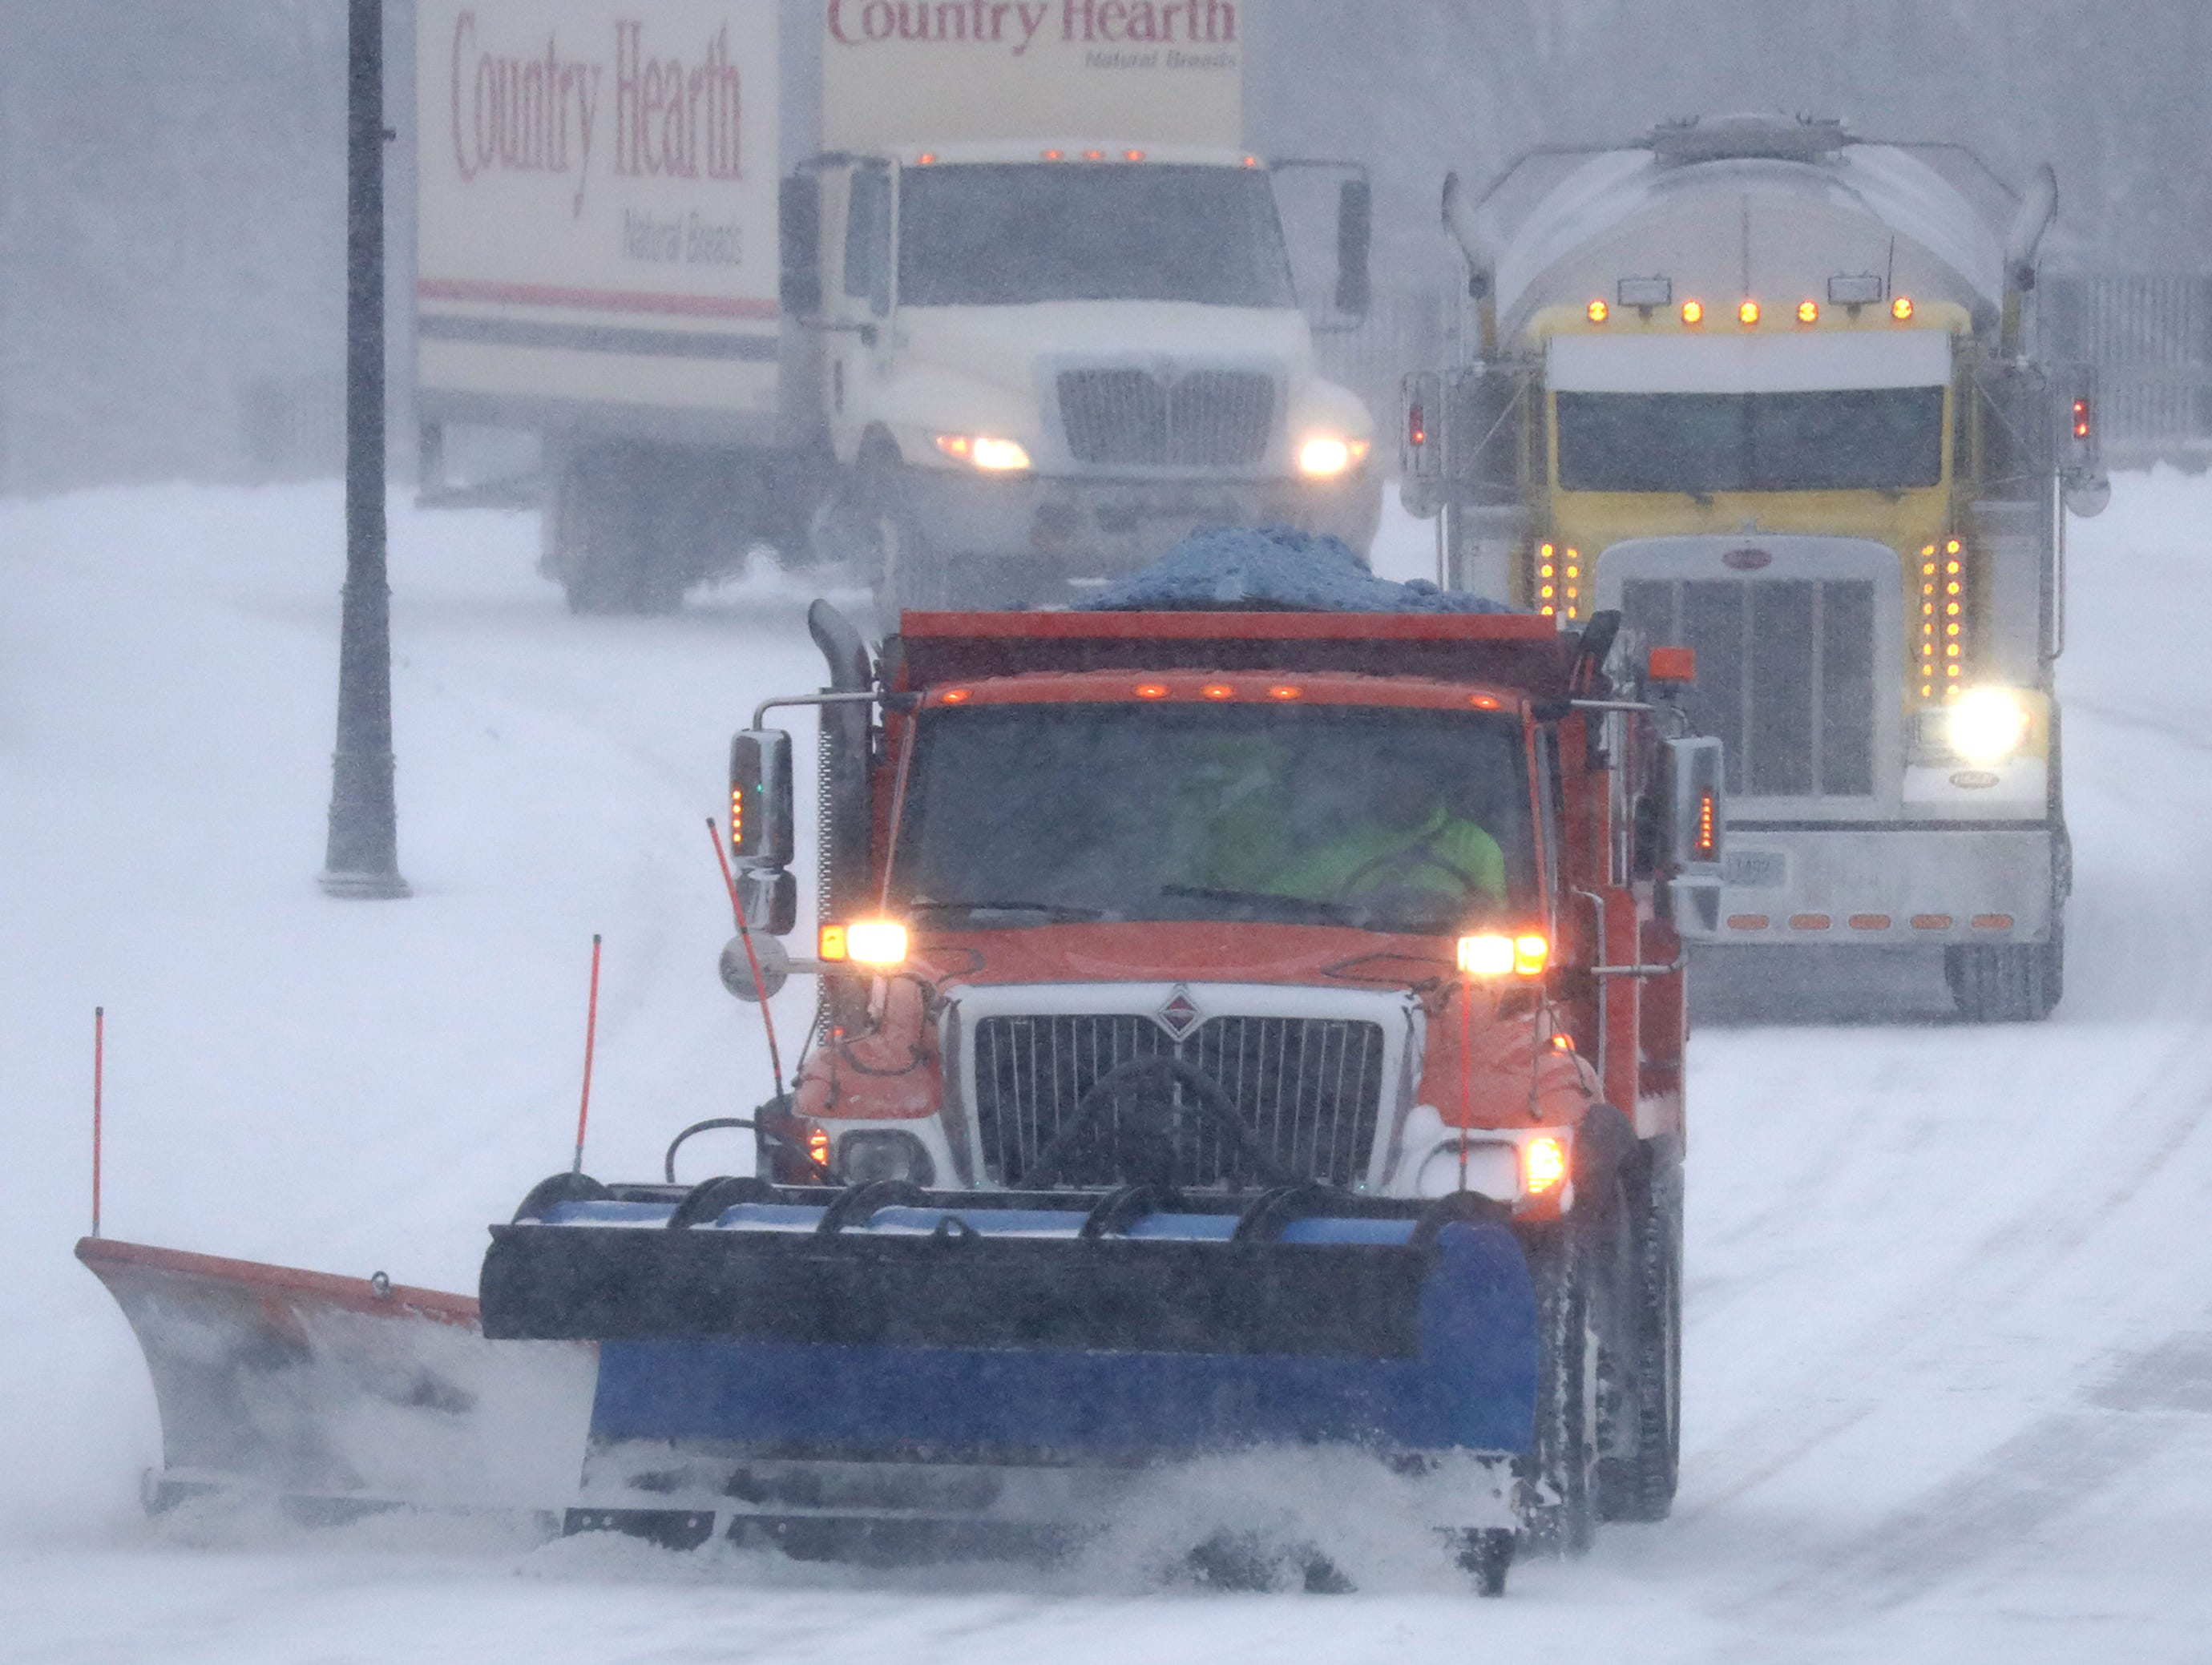 A winter storm moves through Wisconsin on Monday, January 28, 2019, in Kaukauna, Wis.